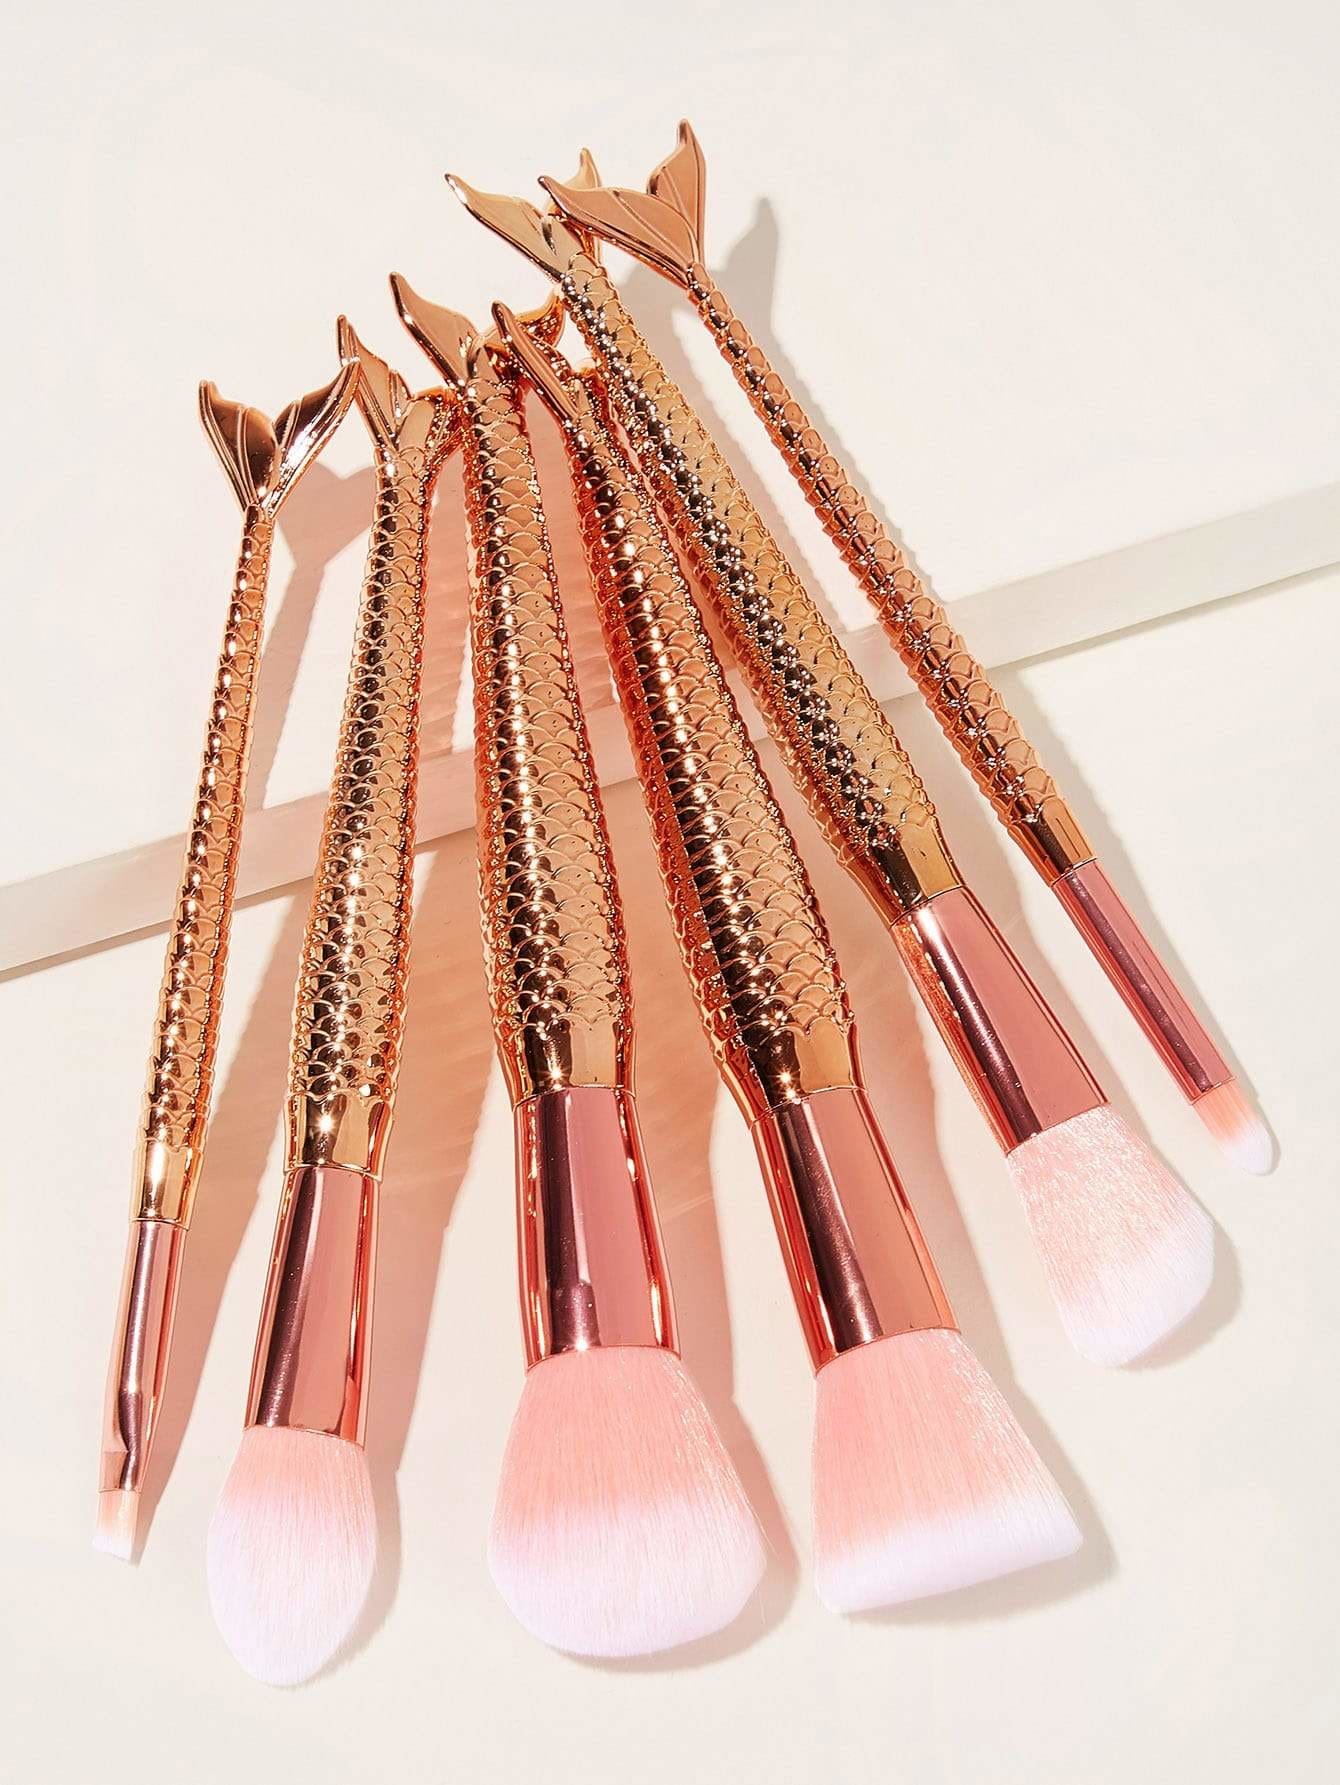 Mermaid Handle Makeup Brush 6pcs - Makeup Brushes